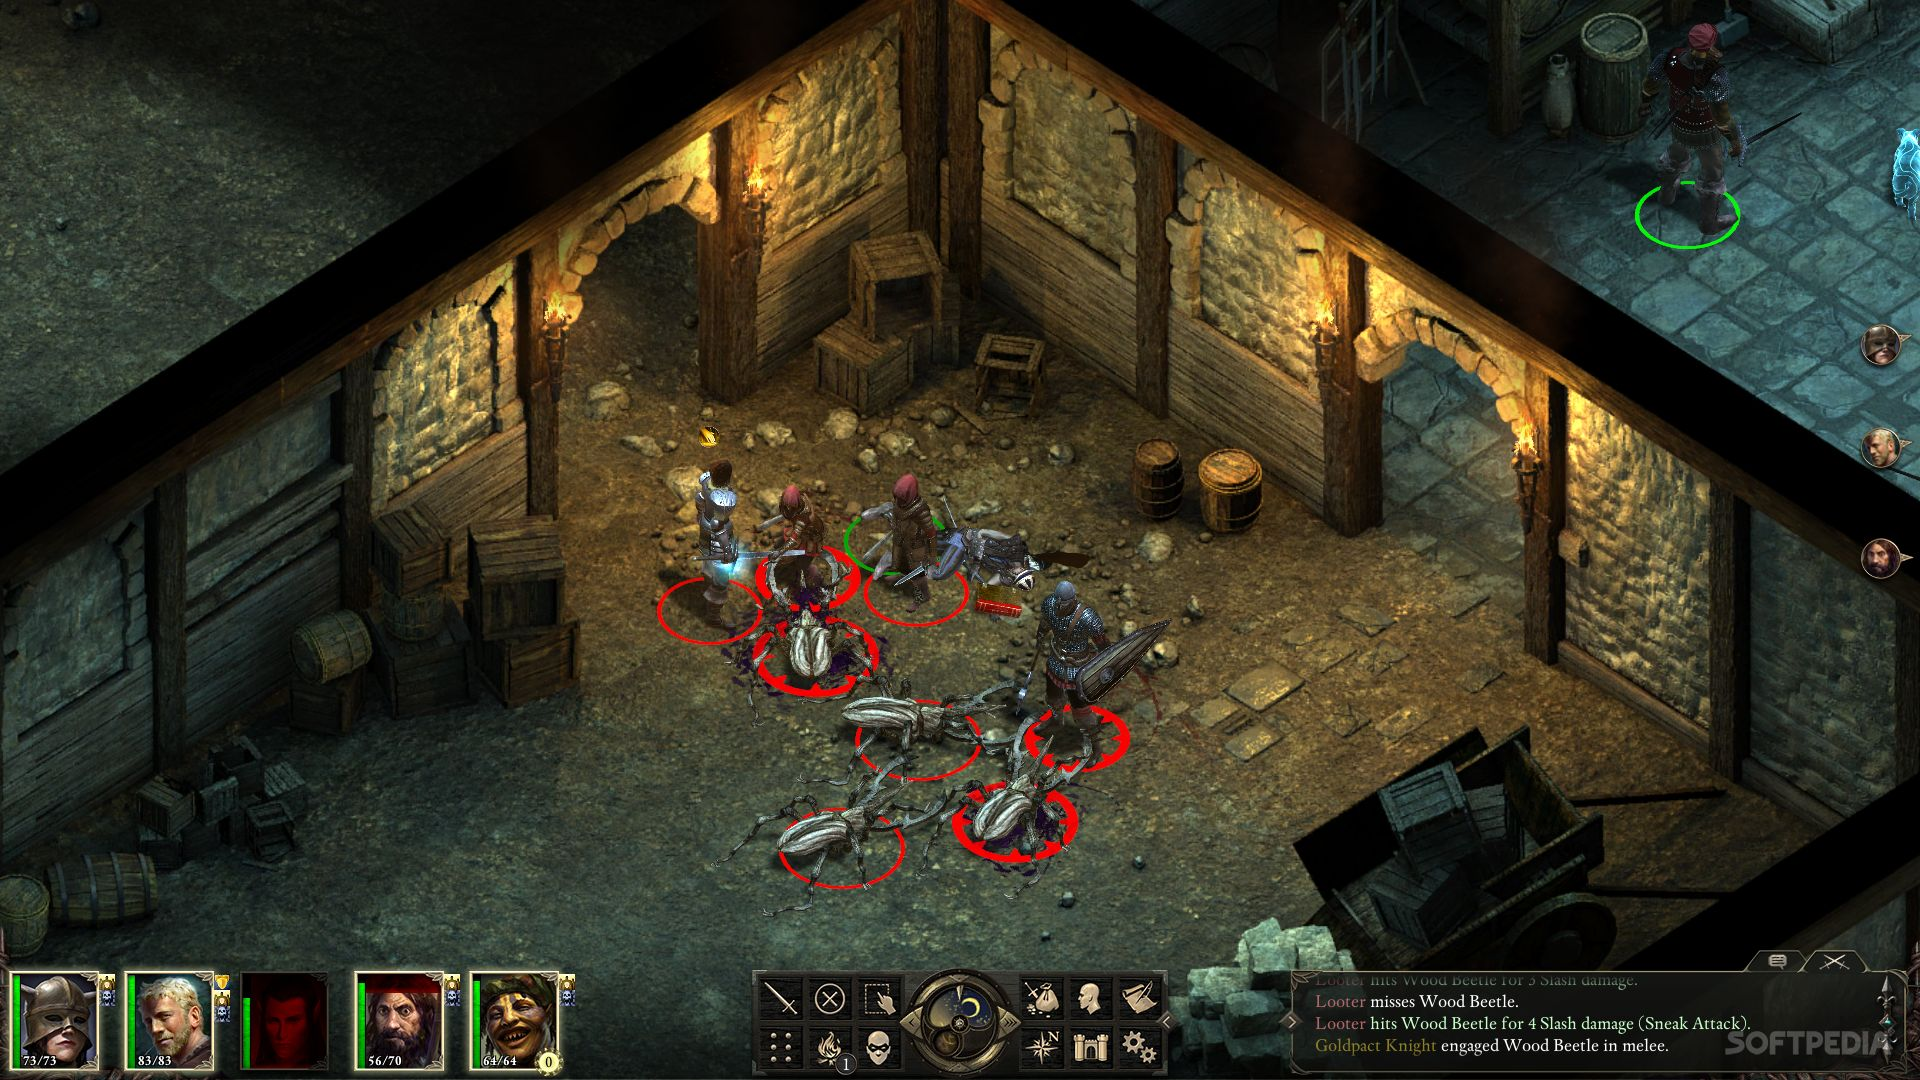 Pillars Of Eternity Best Party 2020 Download Now Pillars of Eternity Patch 1.03 to Fix Double Clicking